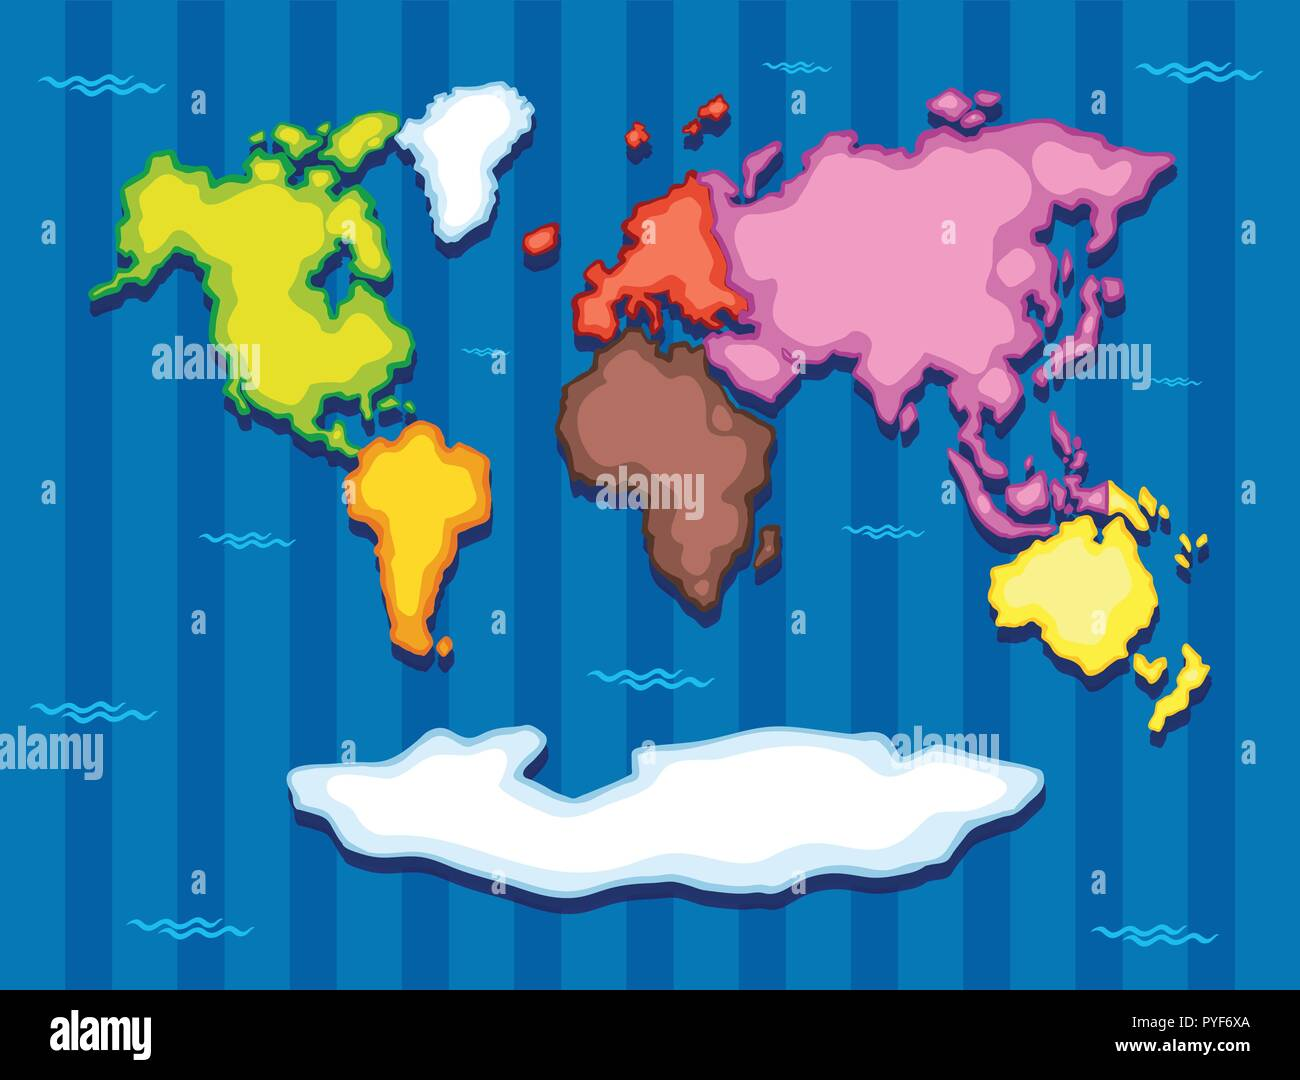 World map with seven continents illustration Stock Vector Art ...